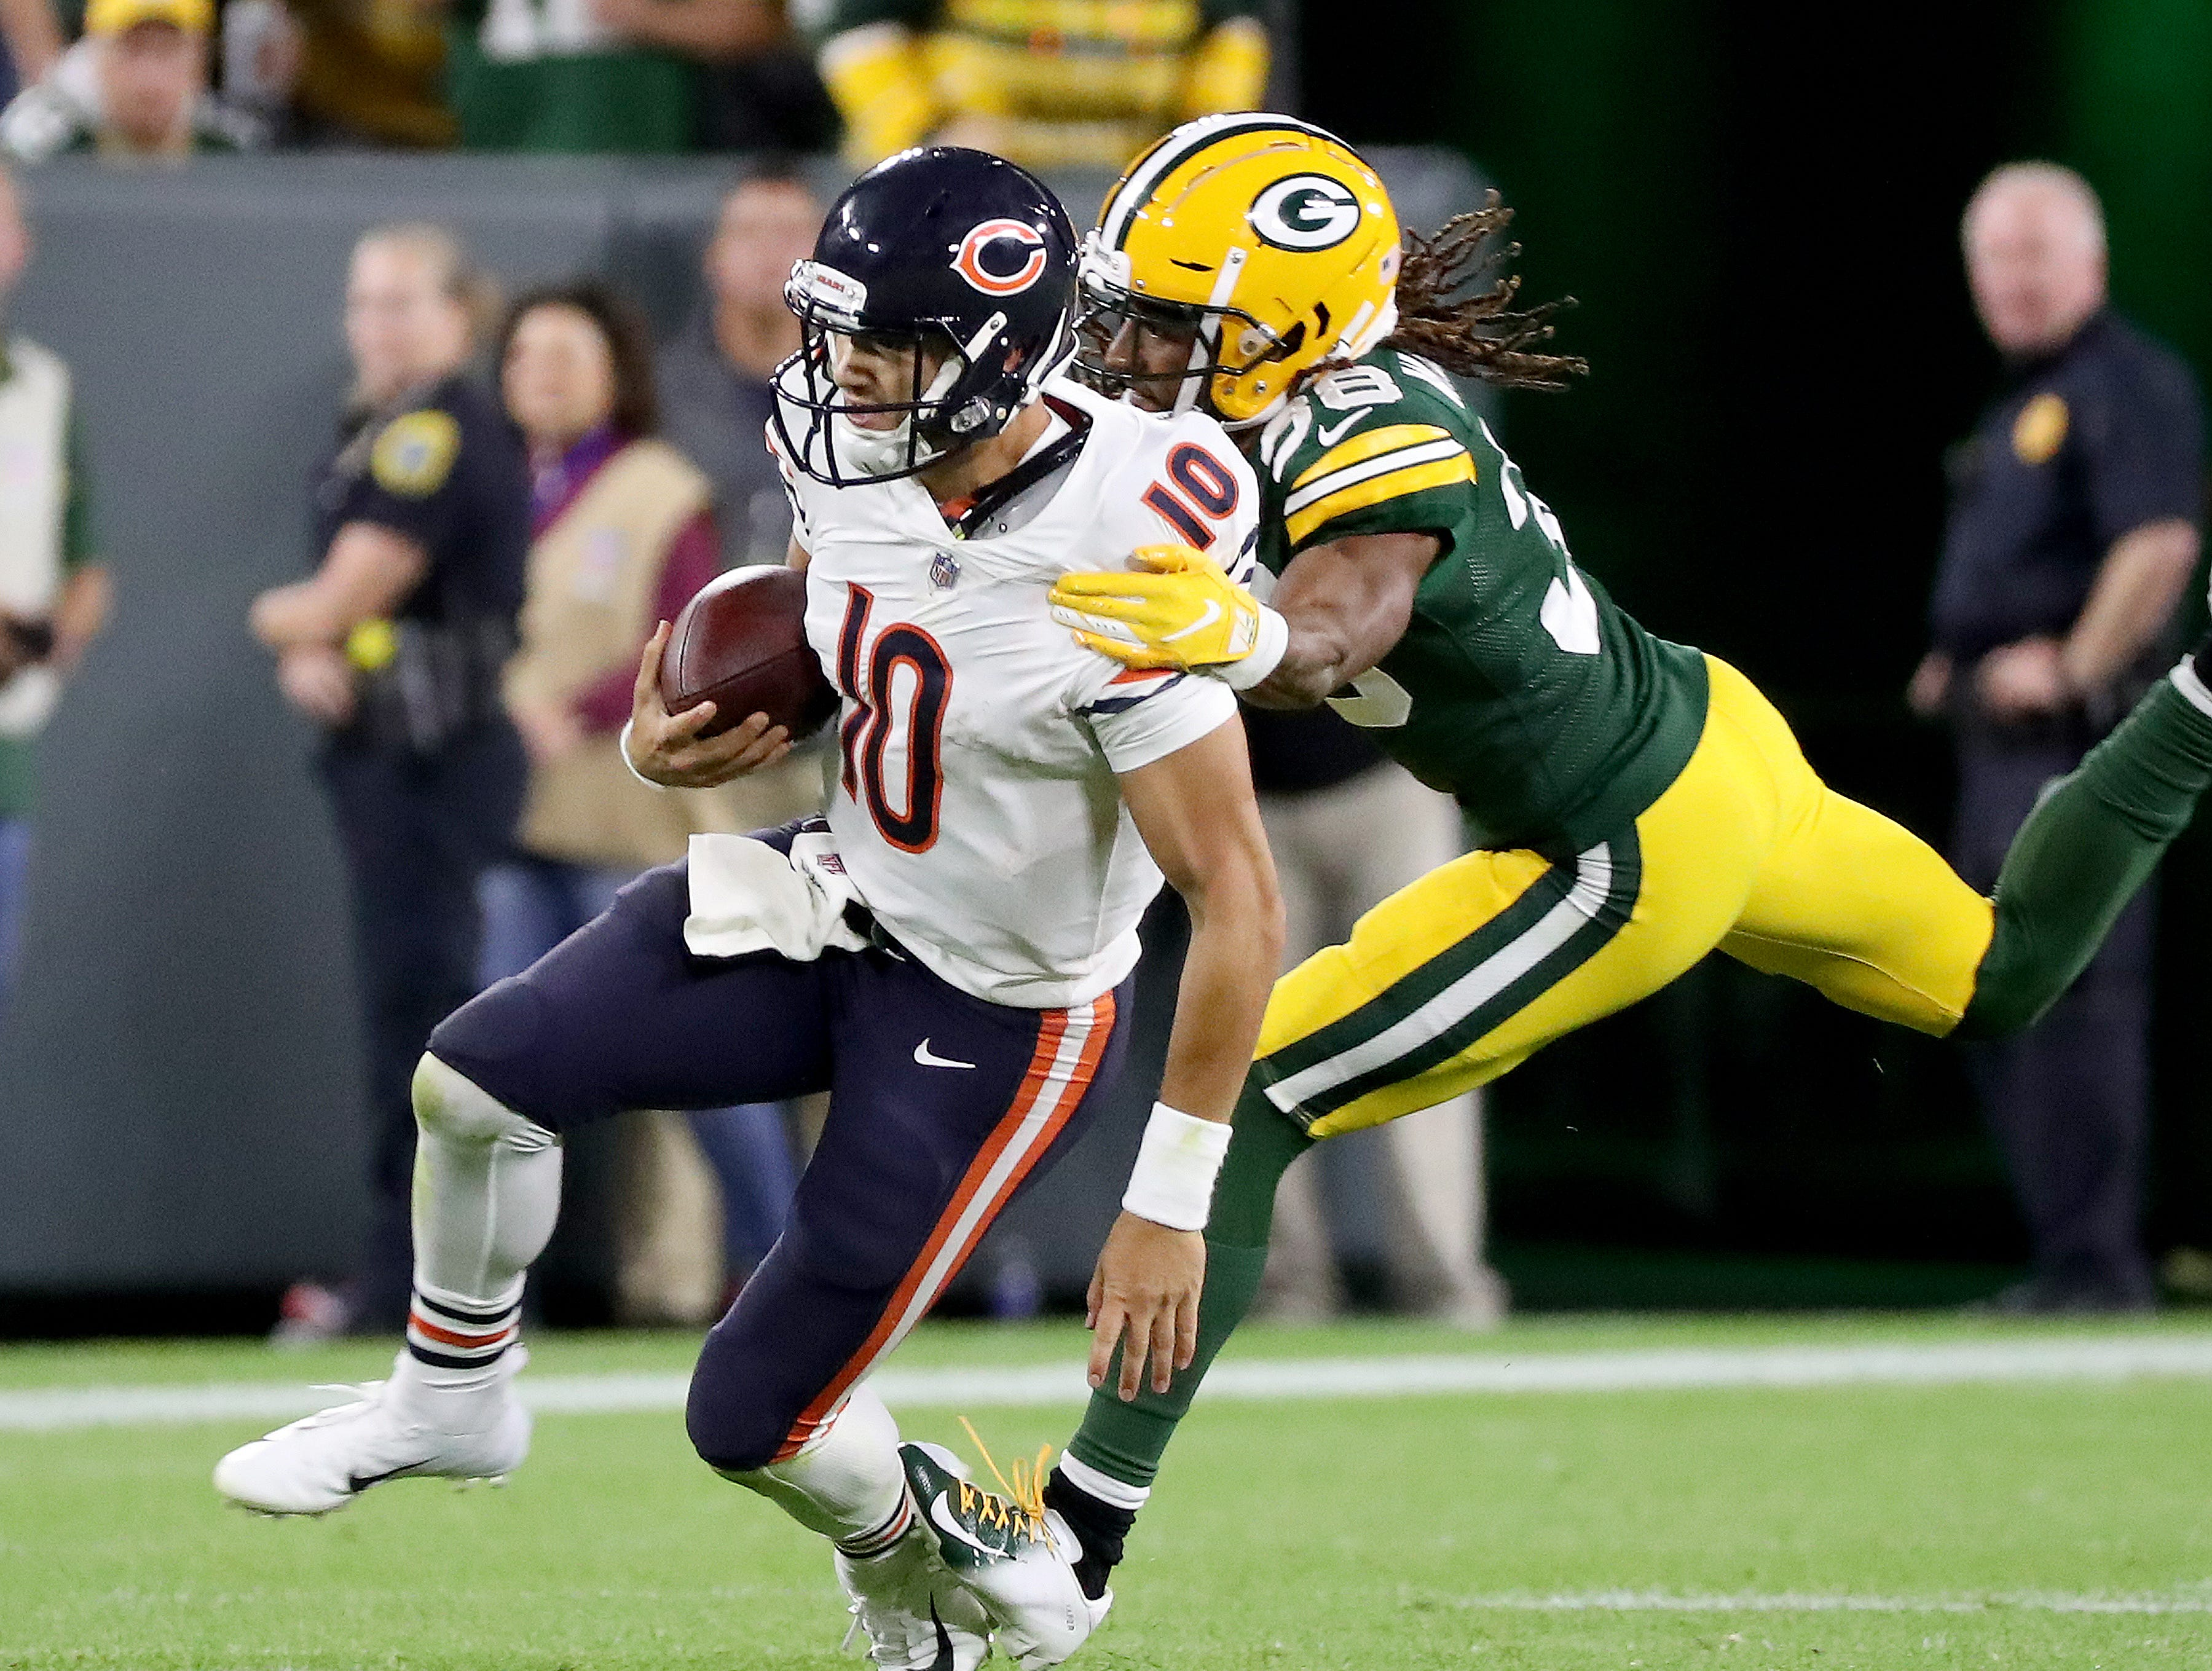 Green Bay Packers defensive back Tramon Williams (38) tackles quarterback Mitchell Trubisky (10) against the Chicago Bears Sunday, September 9, 2018 at Lambeau Field in Green Bay, Wis.